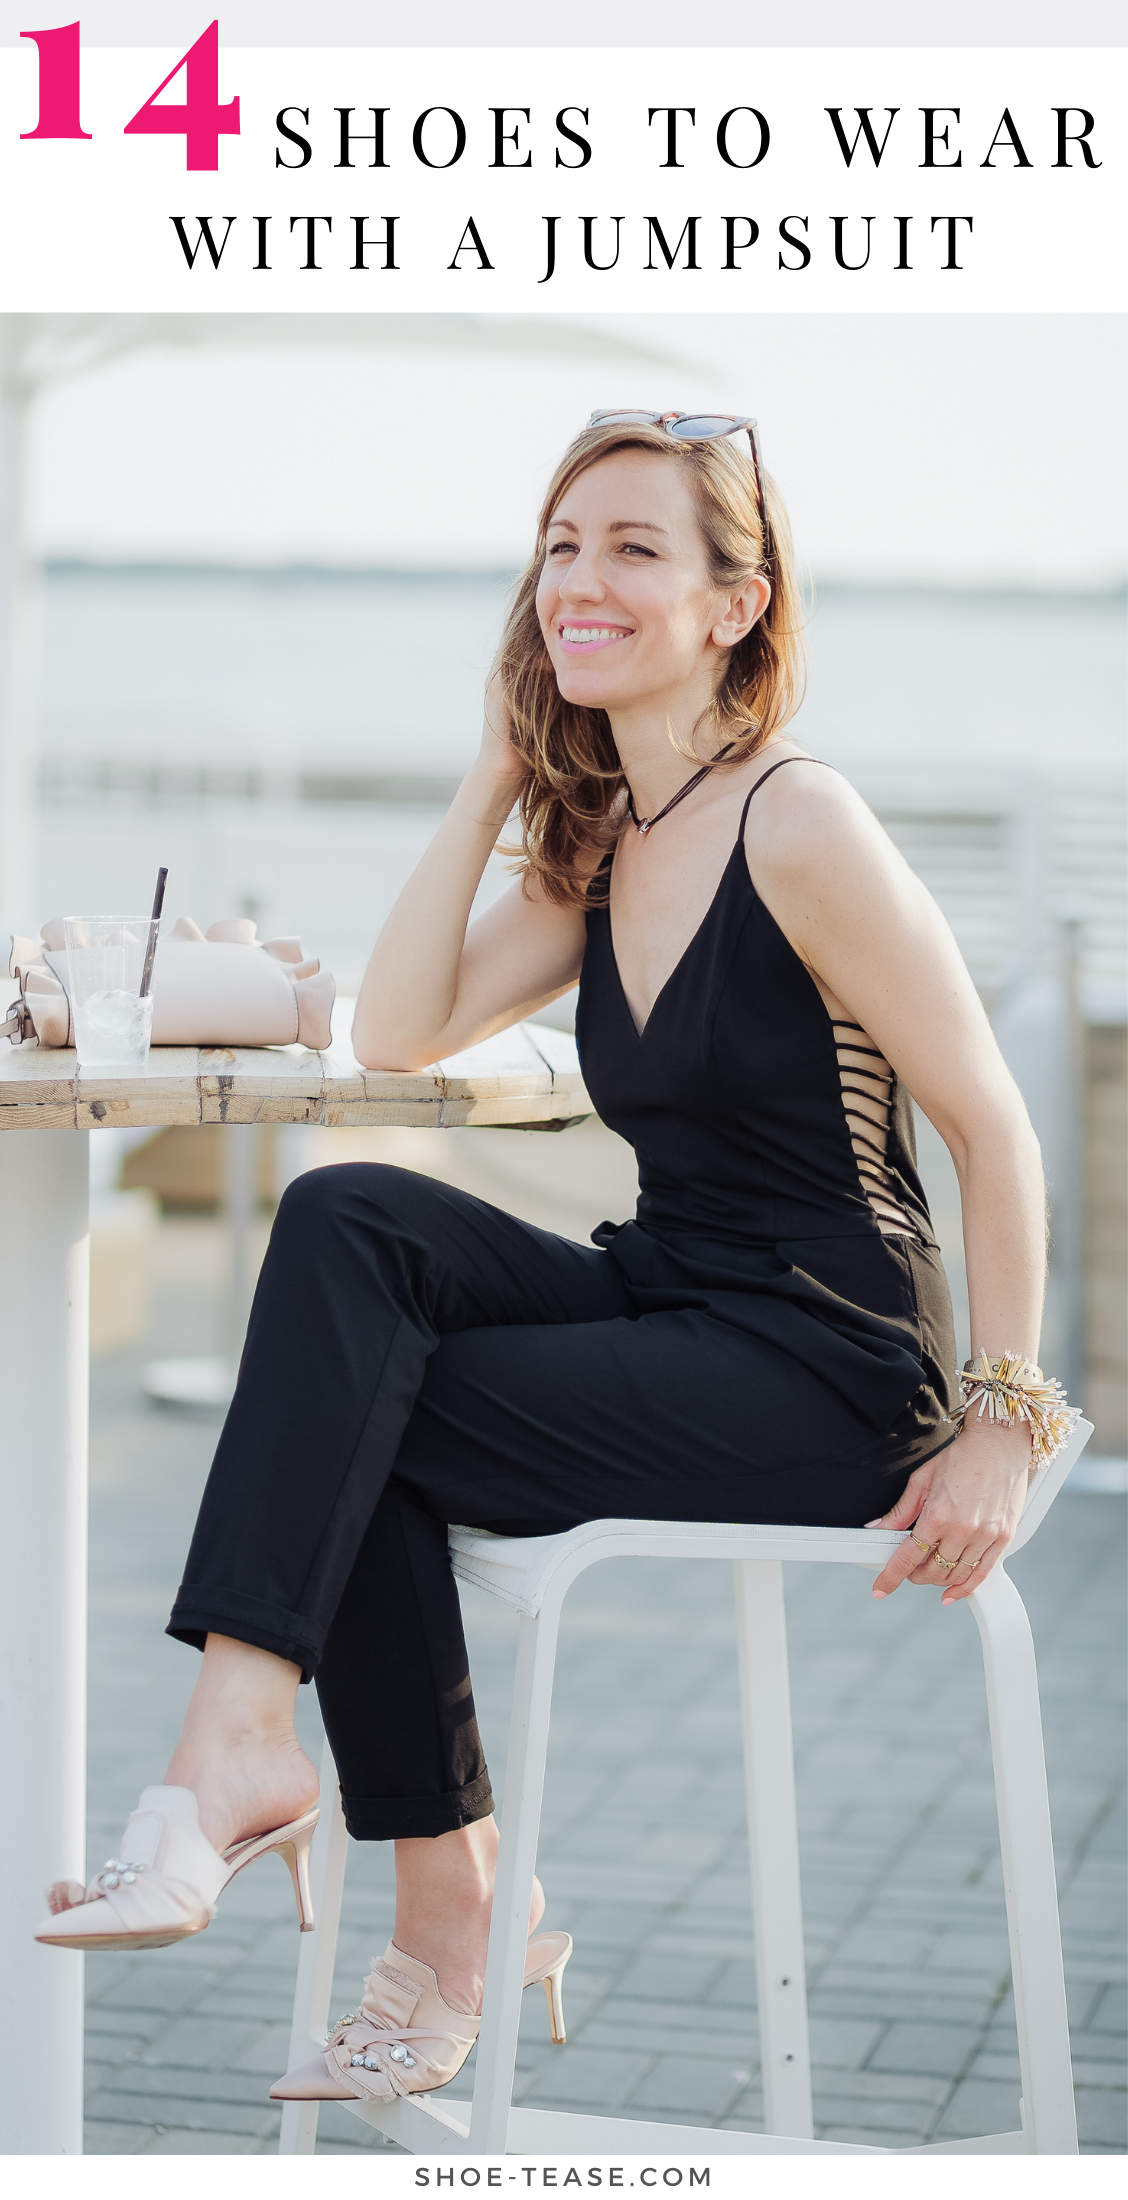 Lady sitting wearing Mule shoes to wear with jumpsuit blush accessories